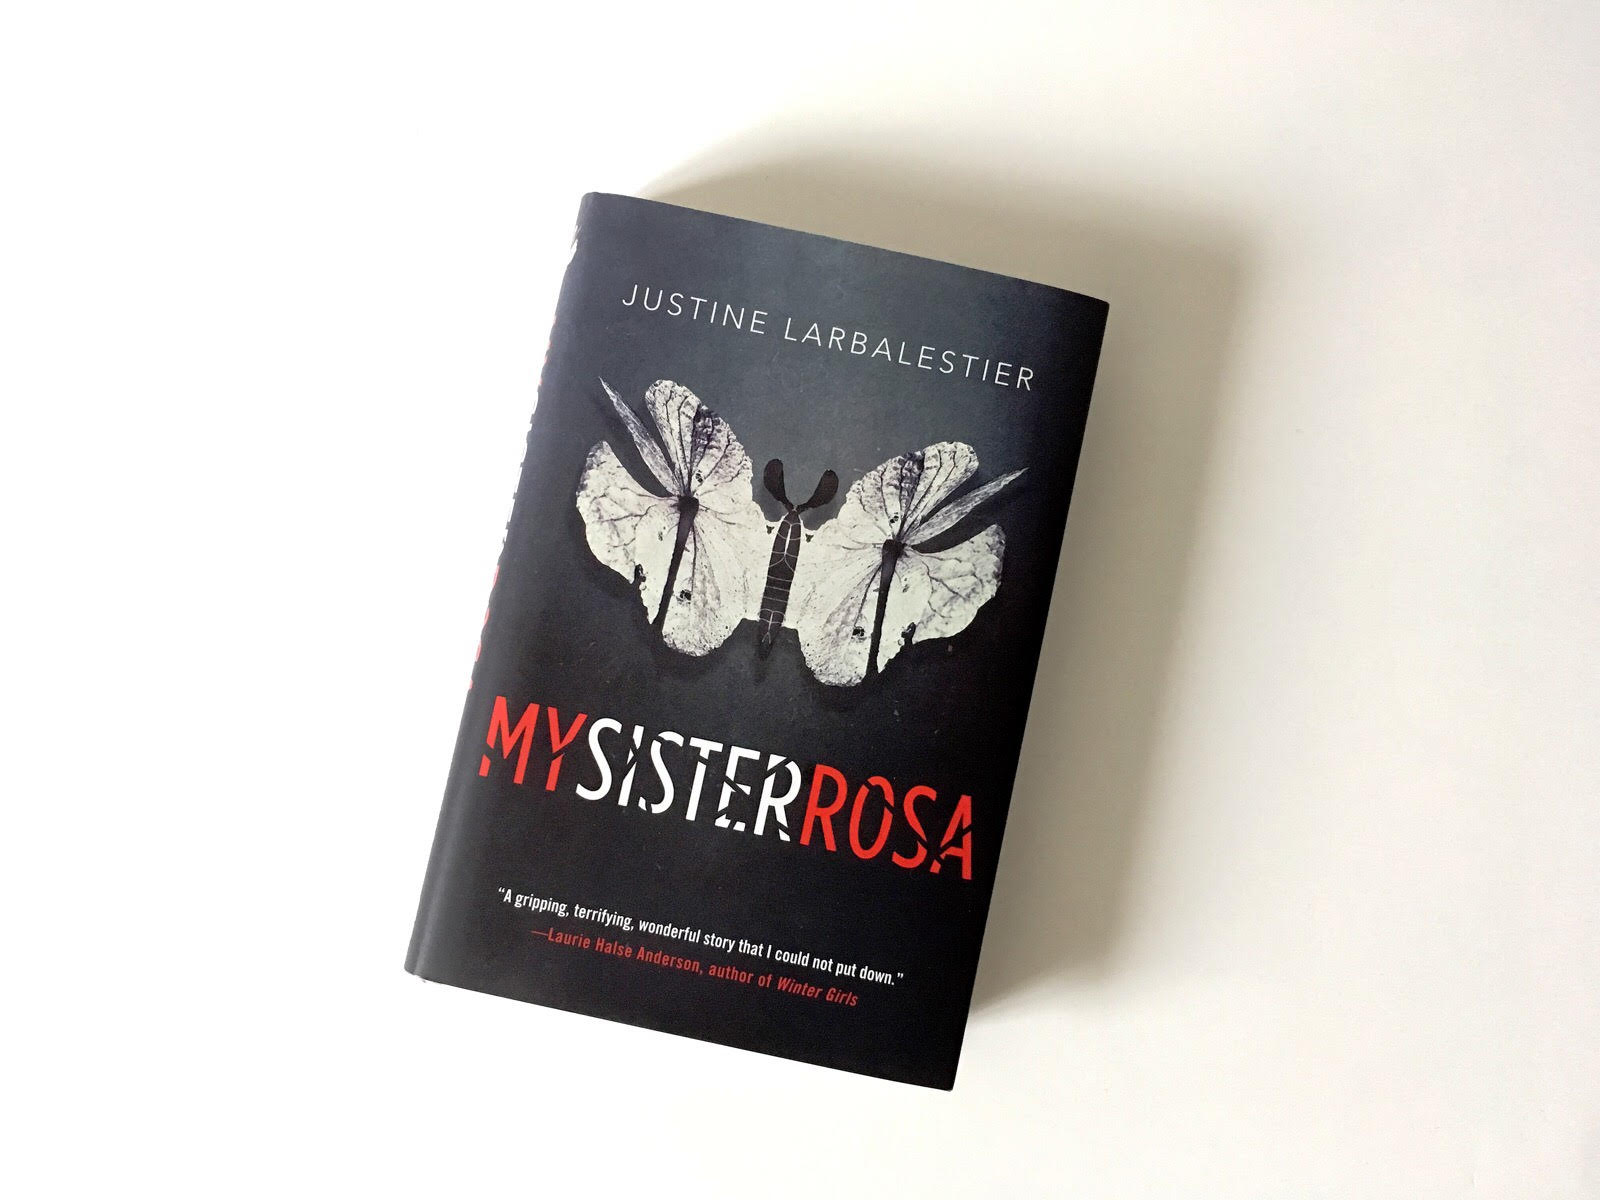 my sister rosa by justine labalestier